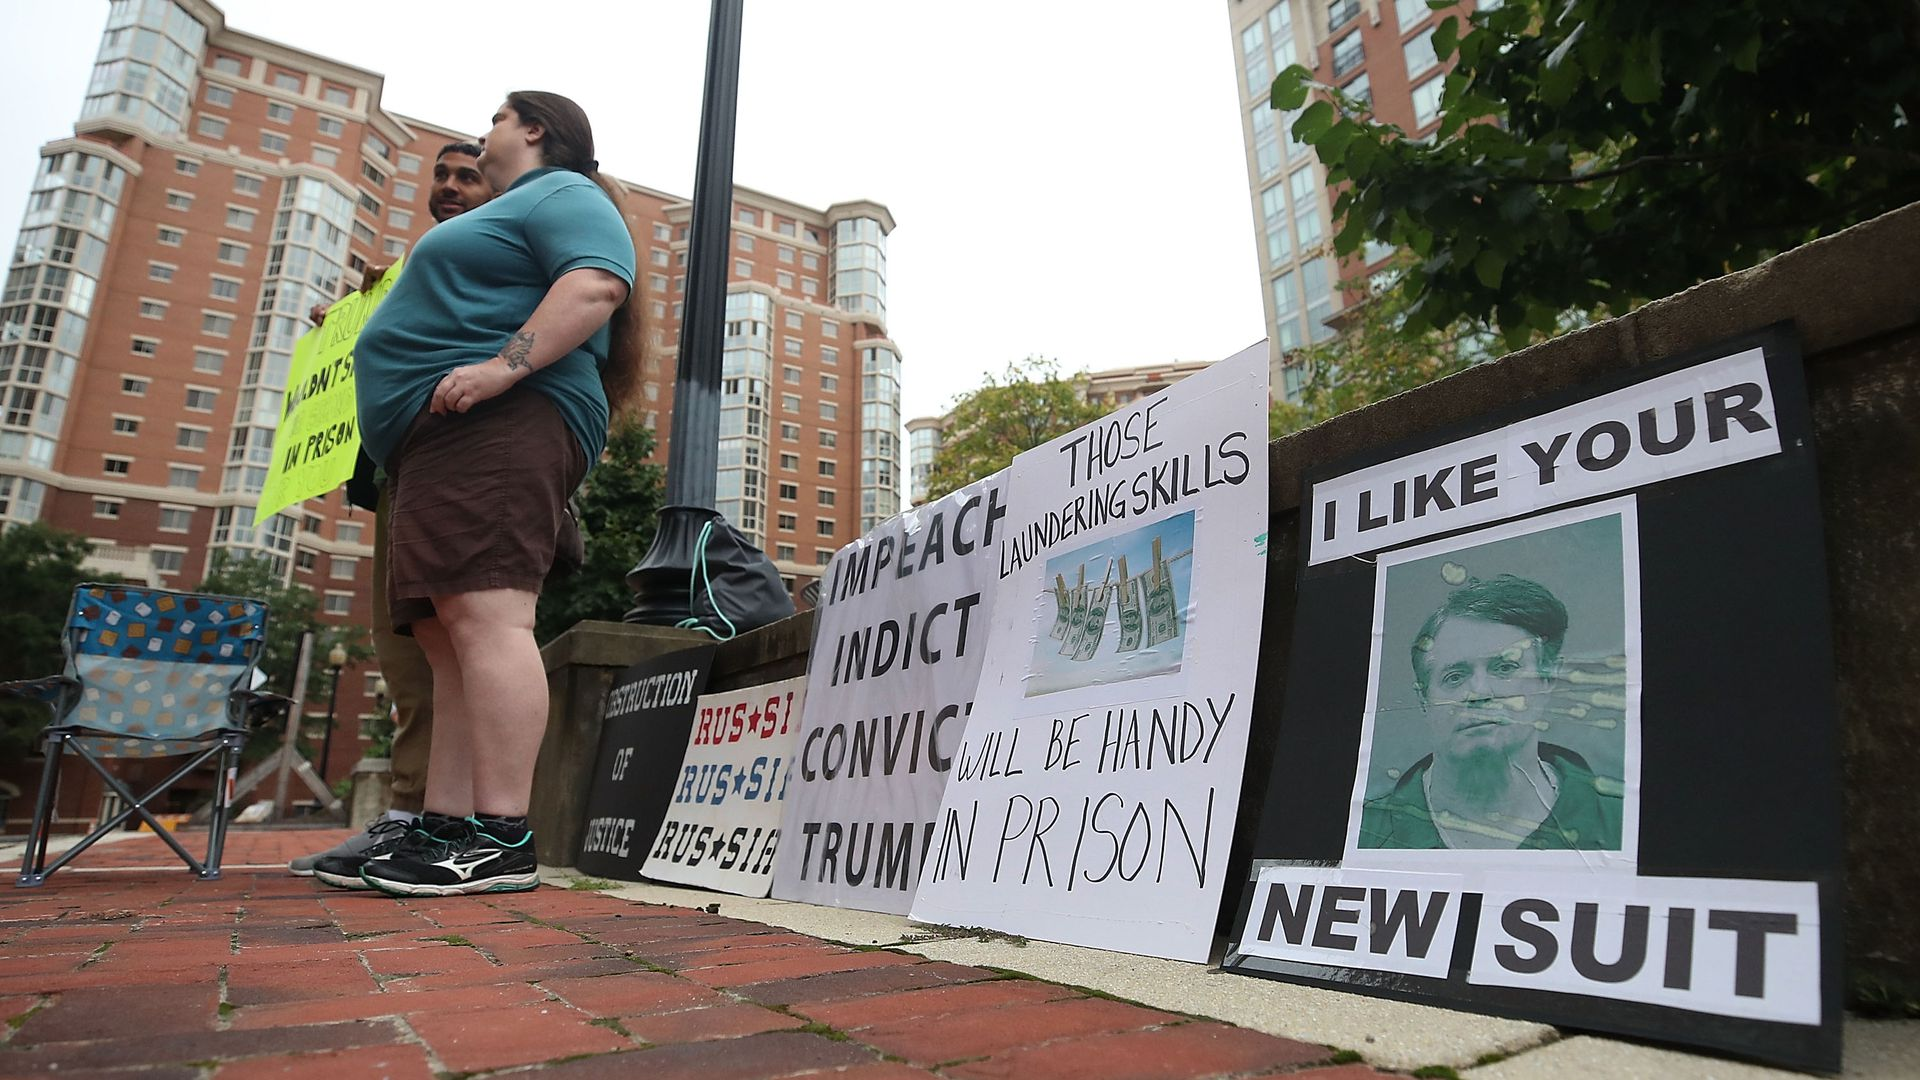 """A sign next to protestors with a mugshot of Paul Manafort, that reads """"I like your new suit."""""""